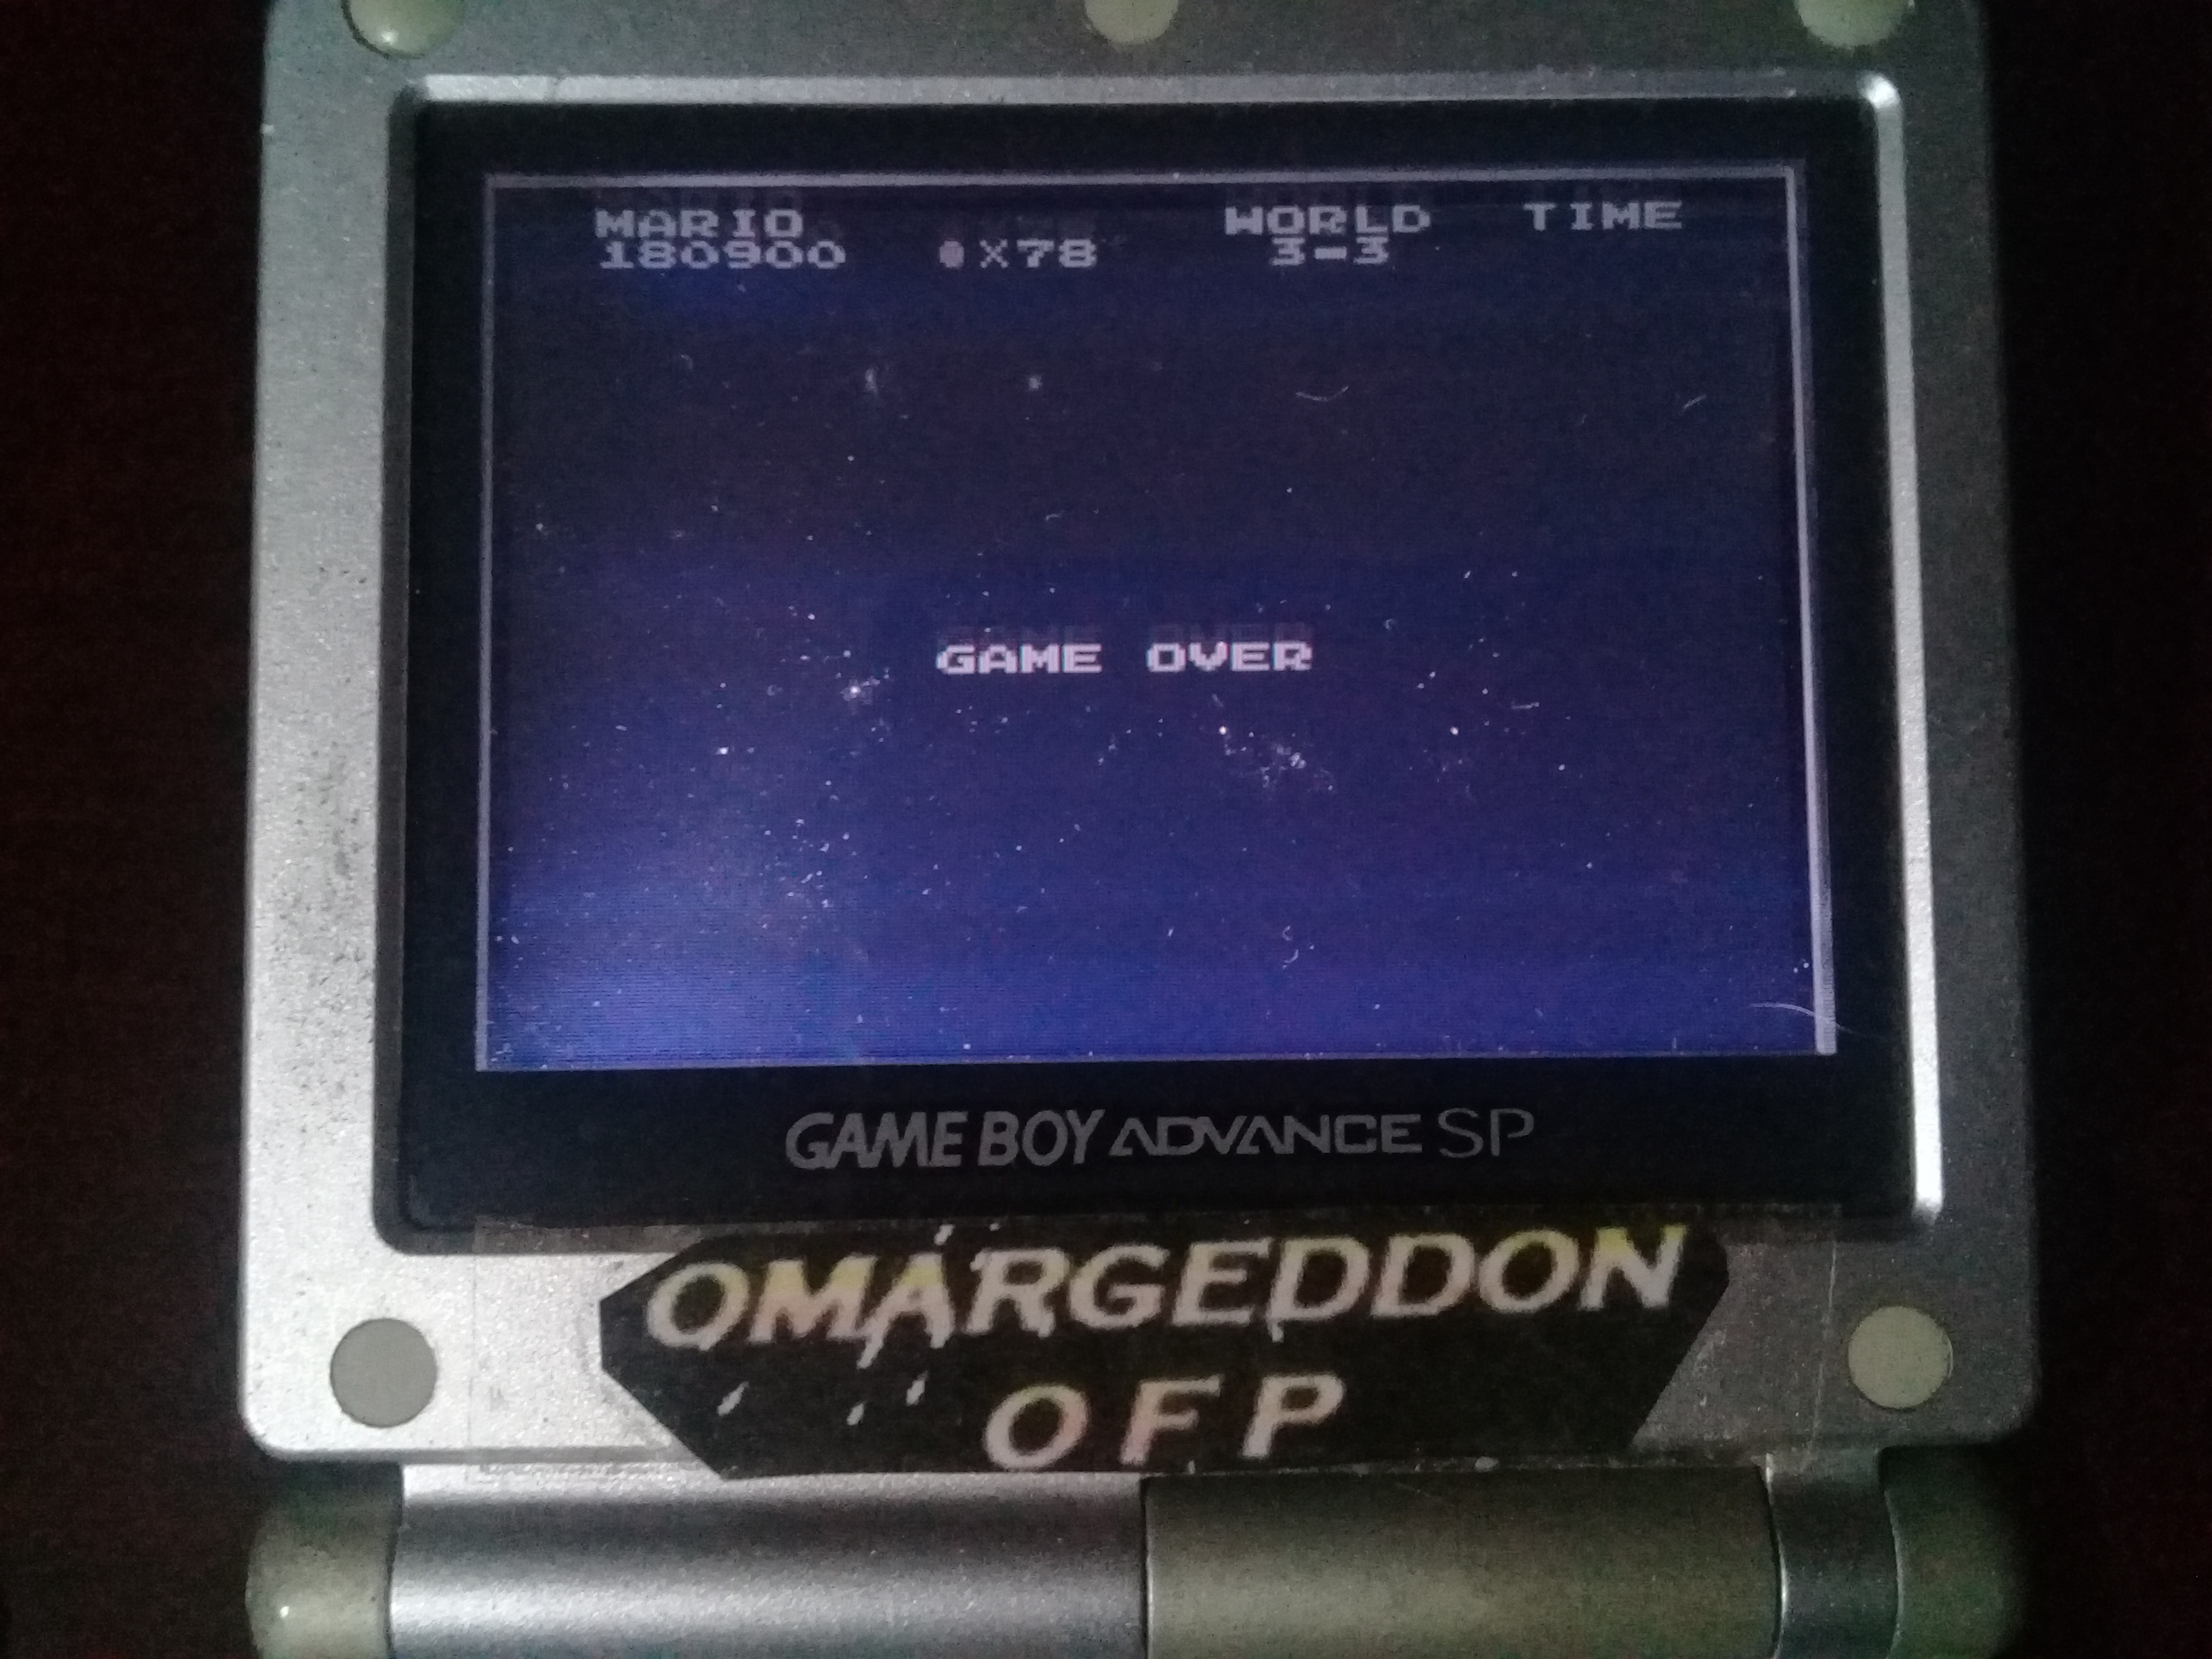 omargeddon: Famicom Mini: Vol. 1: Super Mario Bros. (GBA) 180,900 points on 2019-10-27 20:02:23